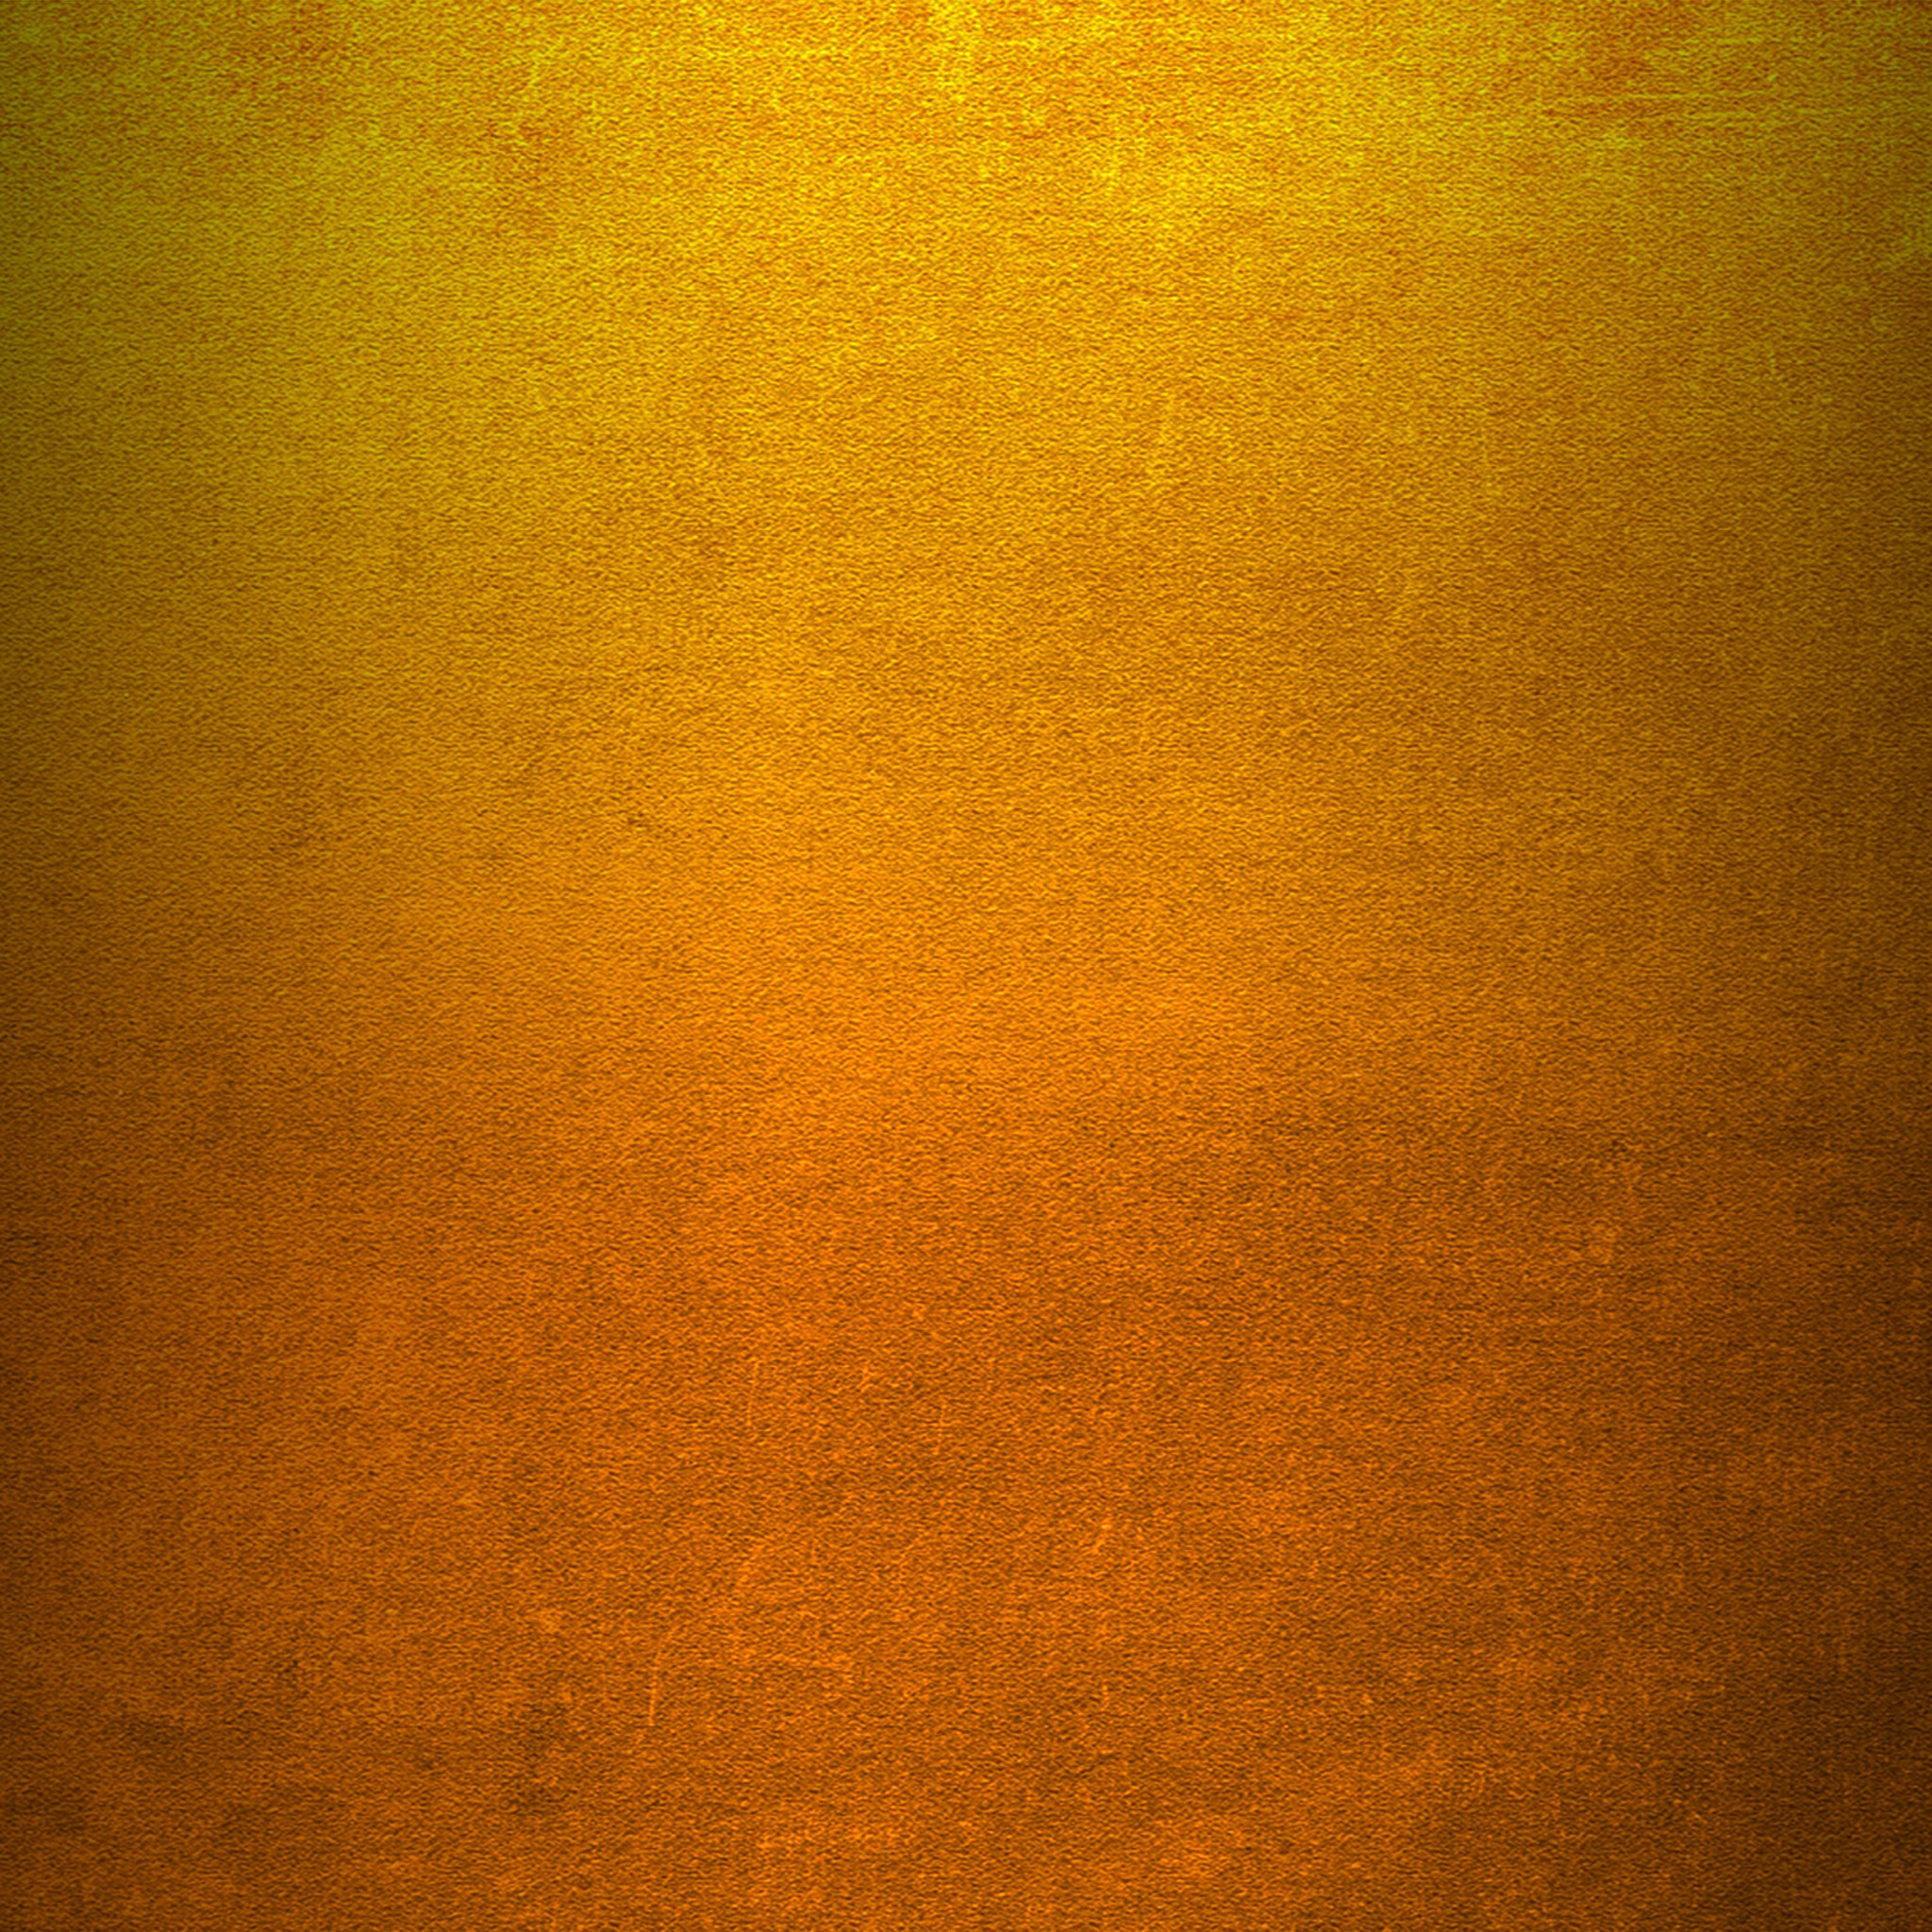 Res: 2048x2048, Blank Orange for Home Screen